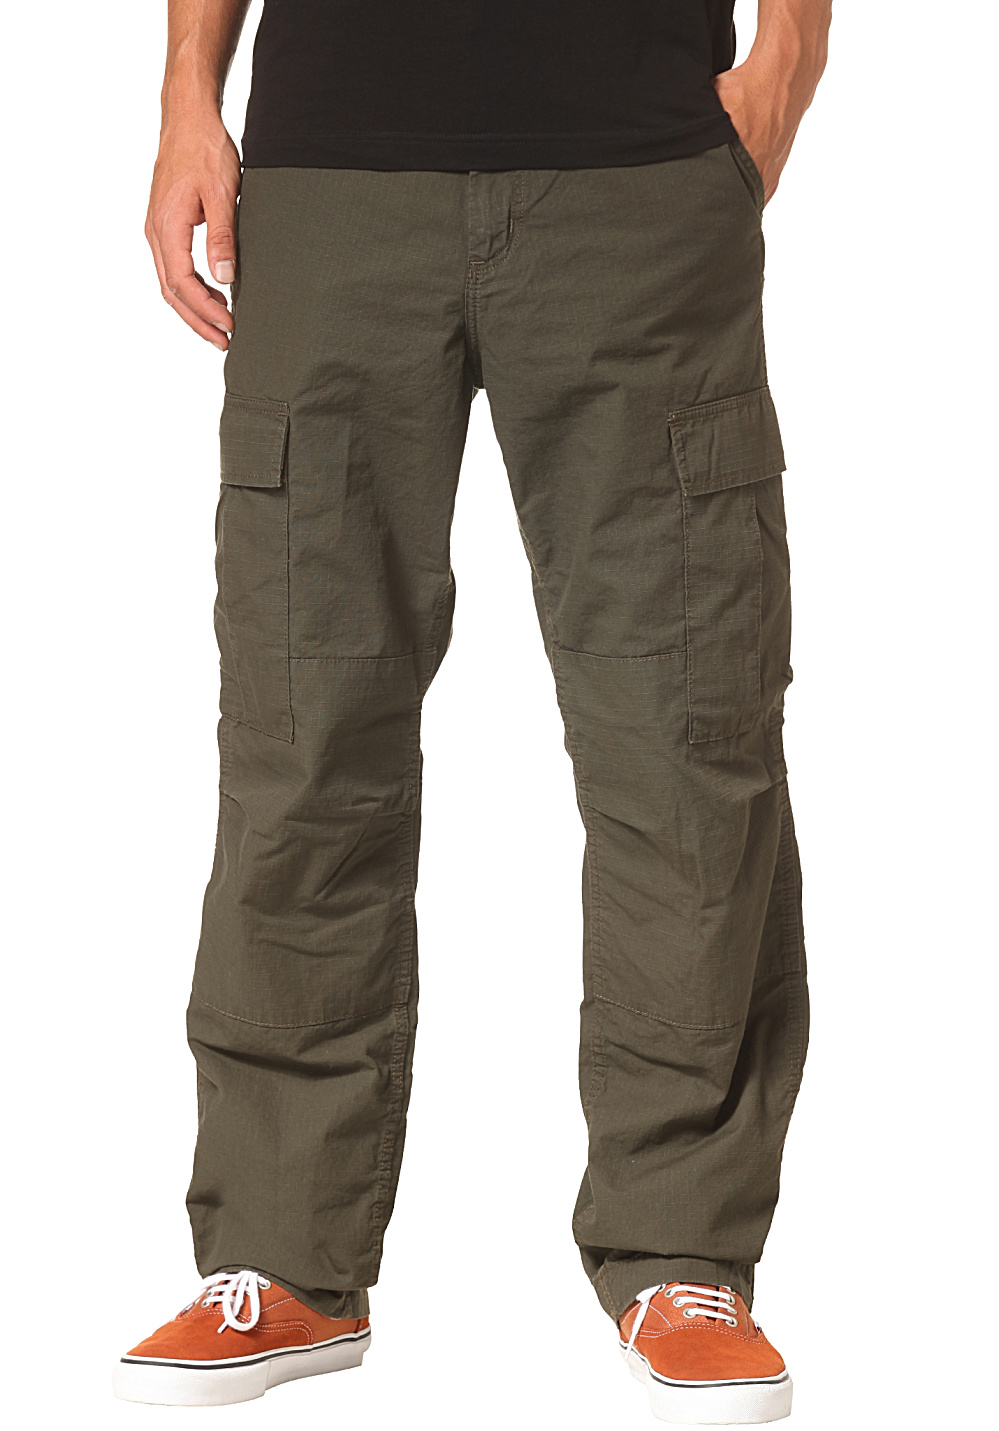 Find great deals on Mens Cargo Pants at Kohl's today! Sponsored Links Outside companies pay to advertise via these links when specific phrases and words are searched.